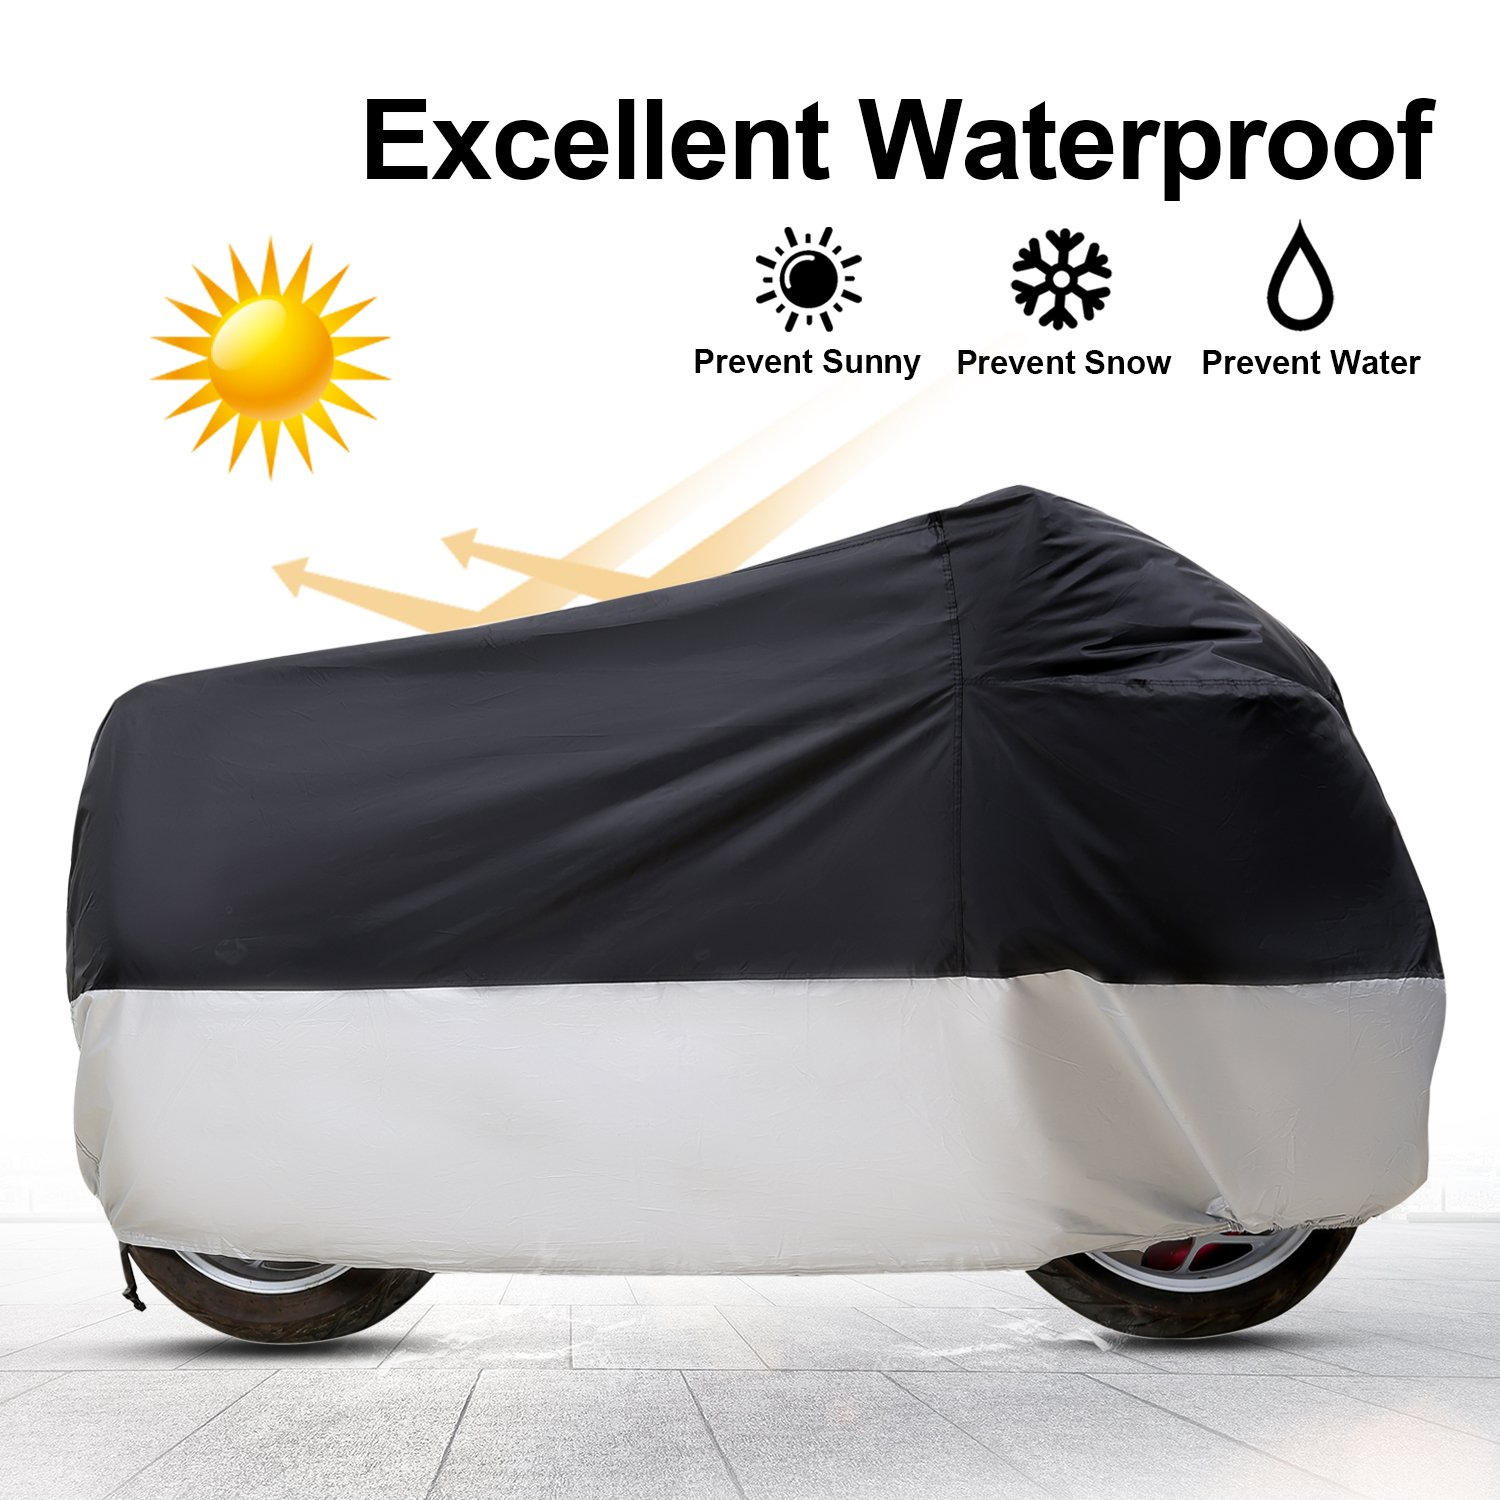 Eleloveph Motorcycle Cover - All Season Waterproof Outdoor Protection - Precision Fit for Tour Bikes, Choppers and Cruisers Protect Against Dust,Rain,Snow and Sun (XXXXL-116''x43''x55'', Black&Sliver) by Eleloveph (Image #2)